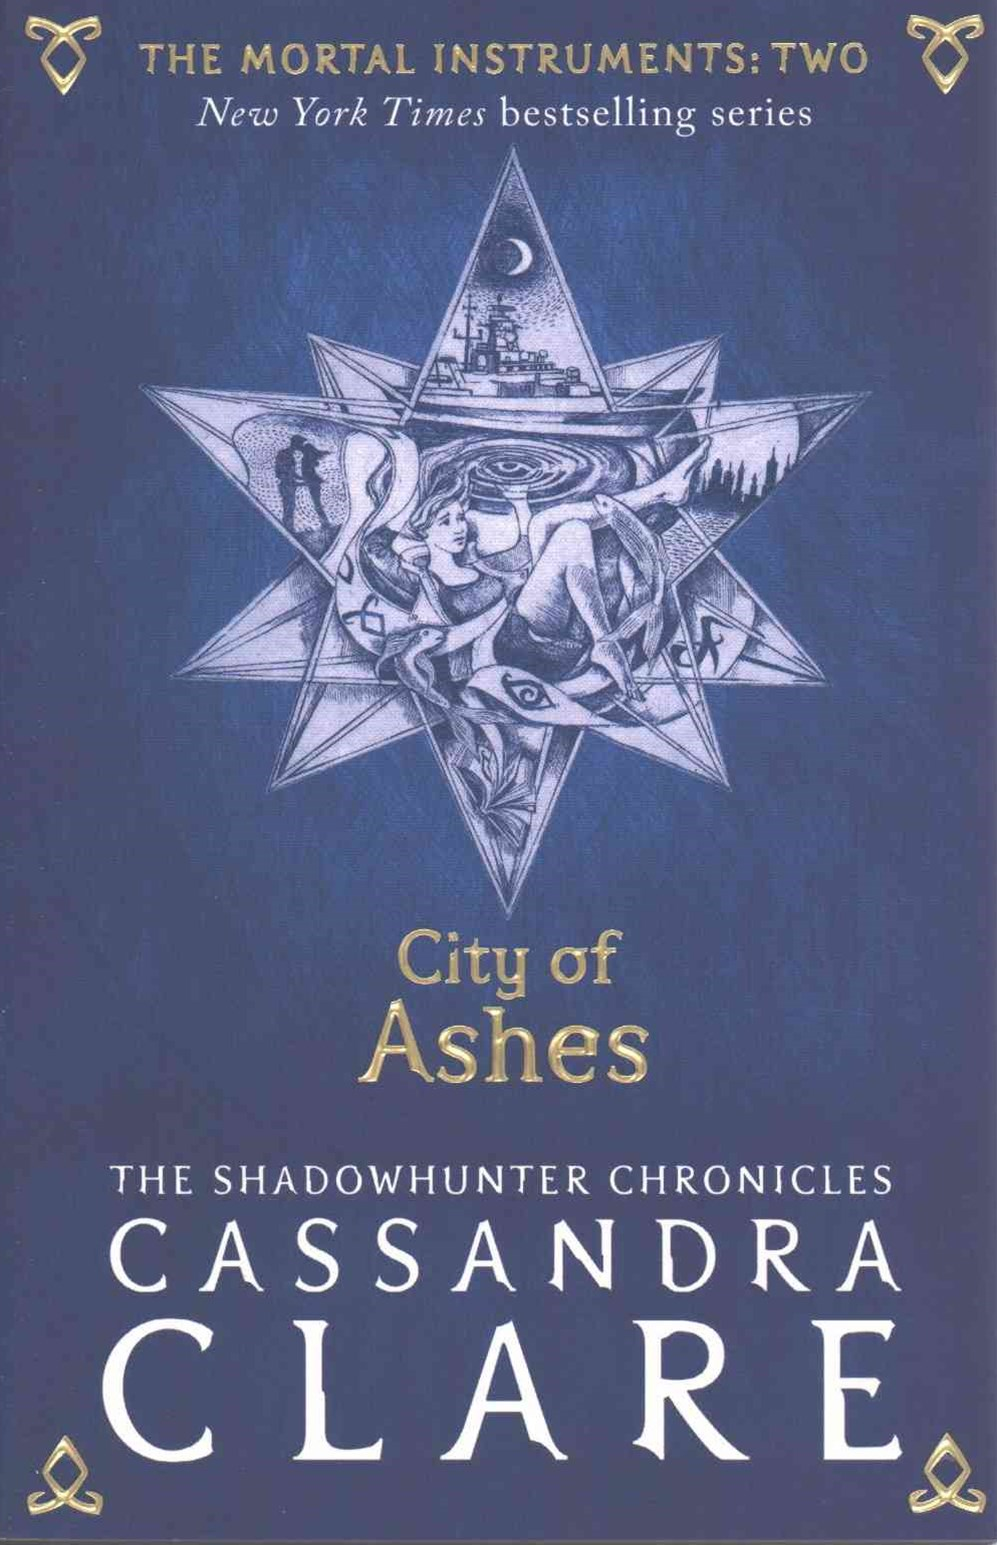 Mortal Instruments Book 2: City of Ashes